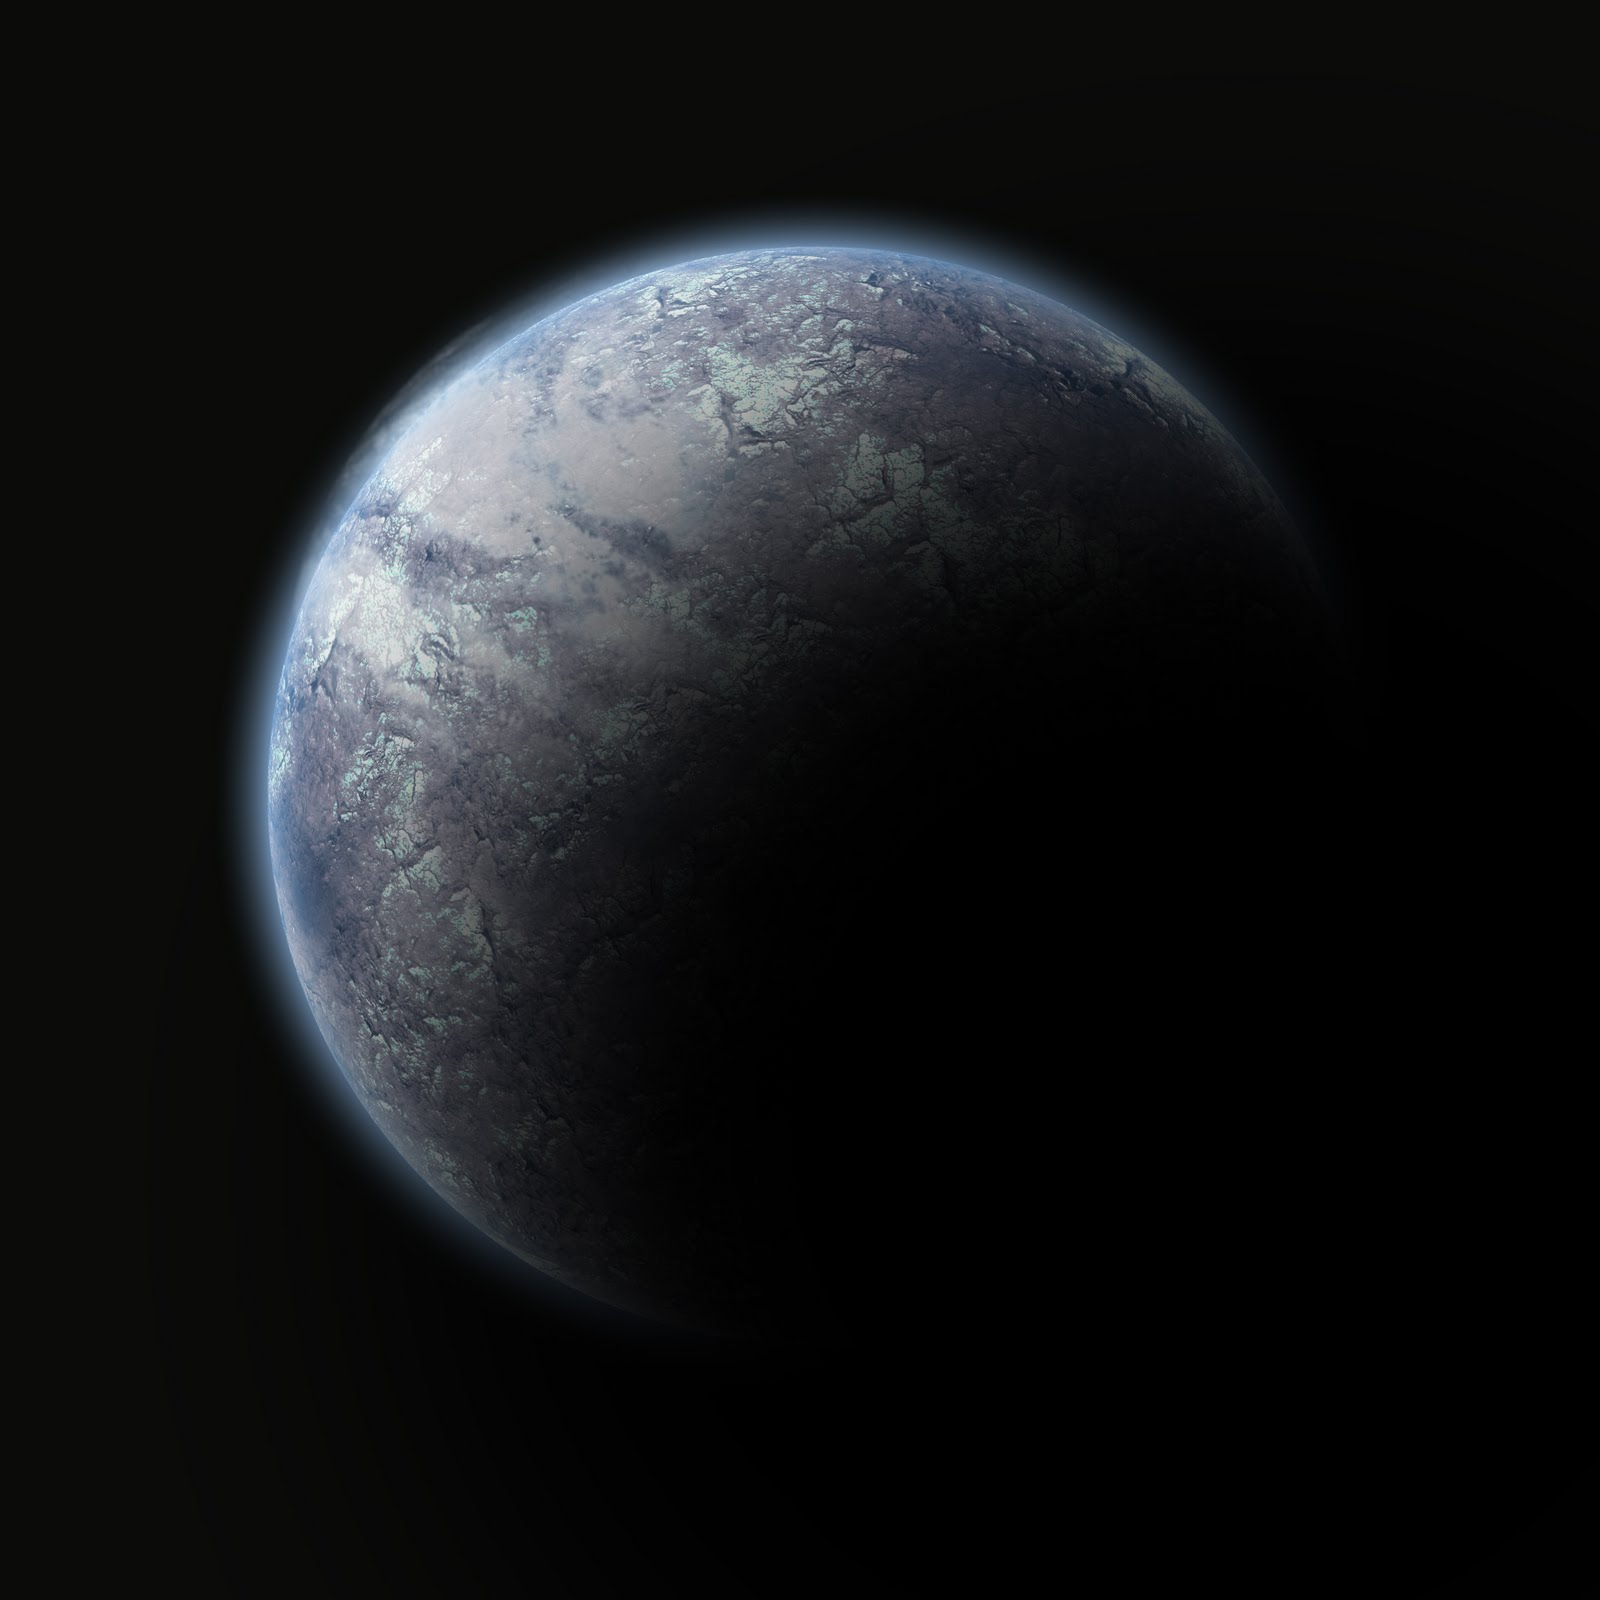 Fuze Design: Creating a planet in Photoshop